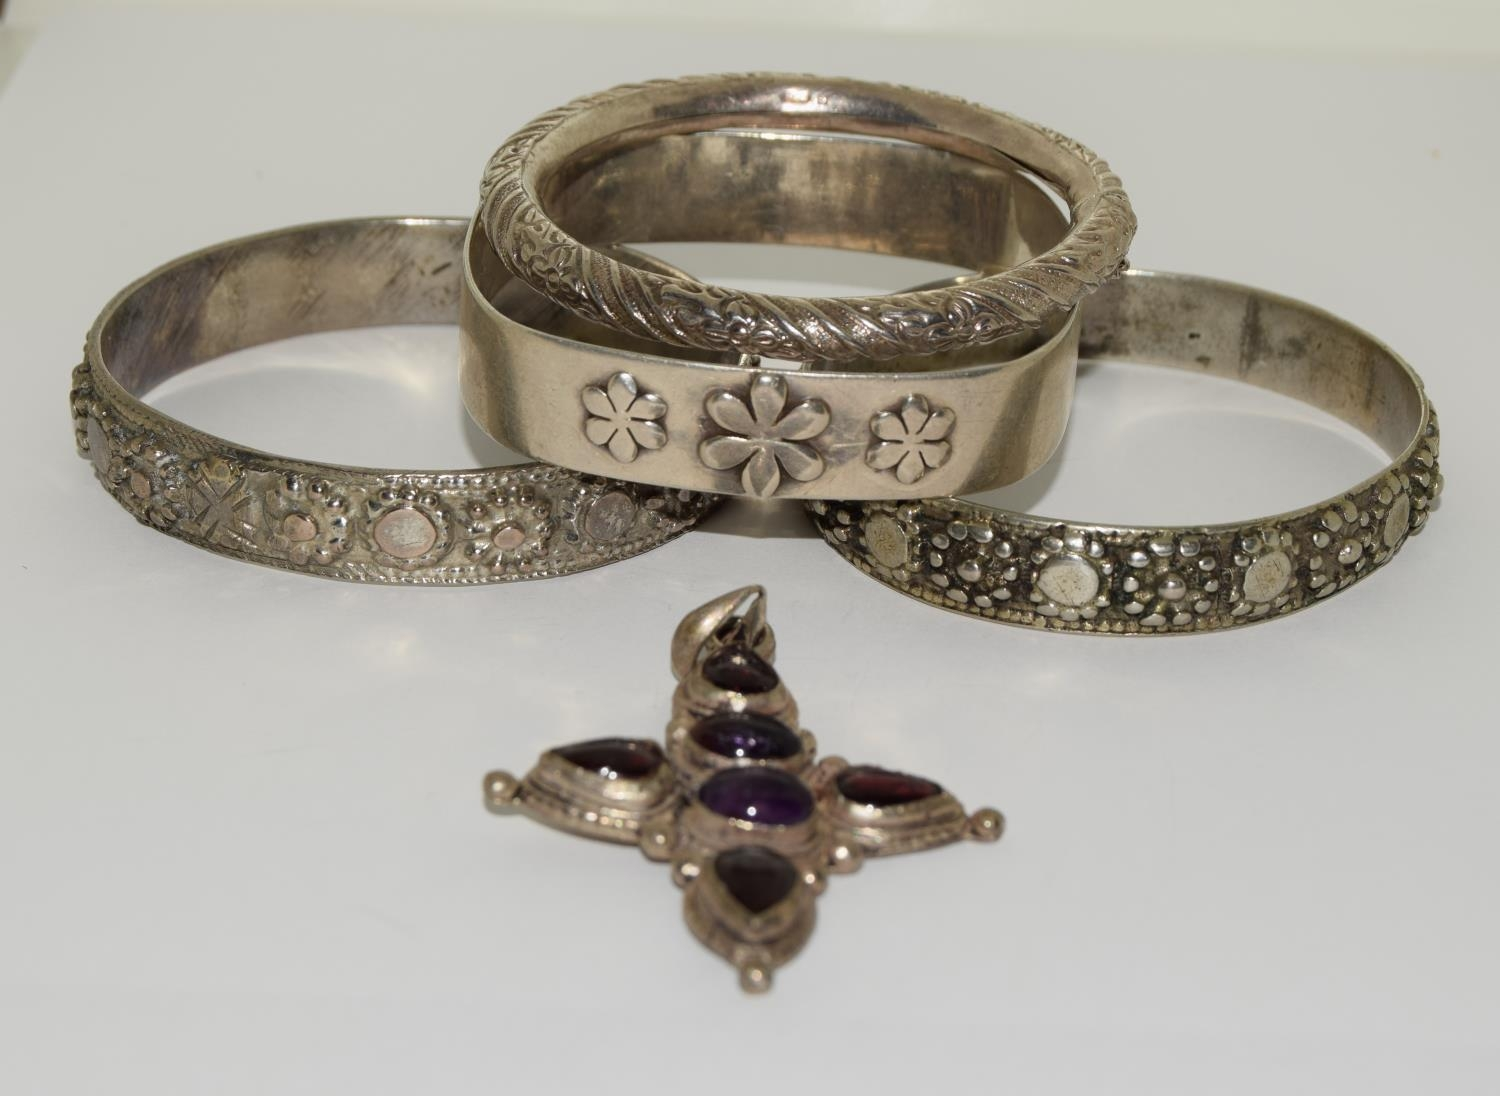 Four silver and white metal bangles together with a garnet and amethyst cross.